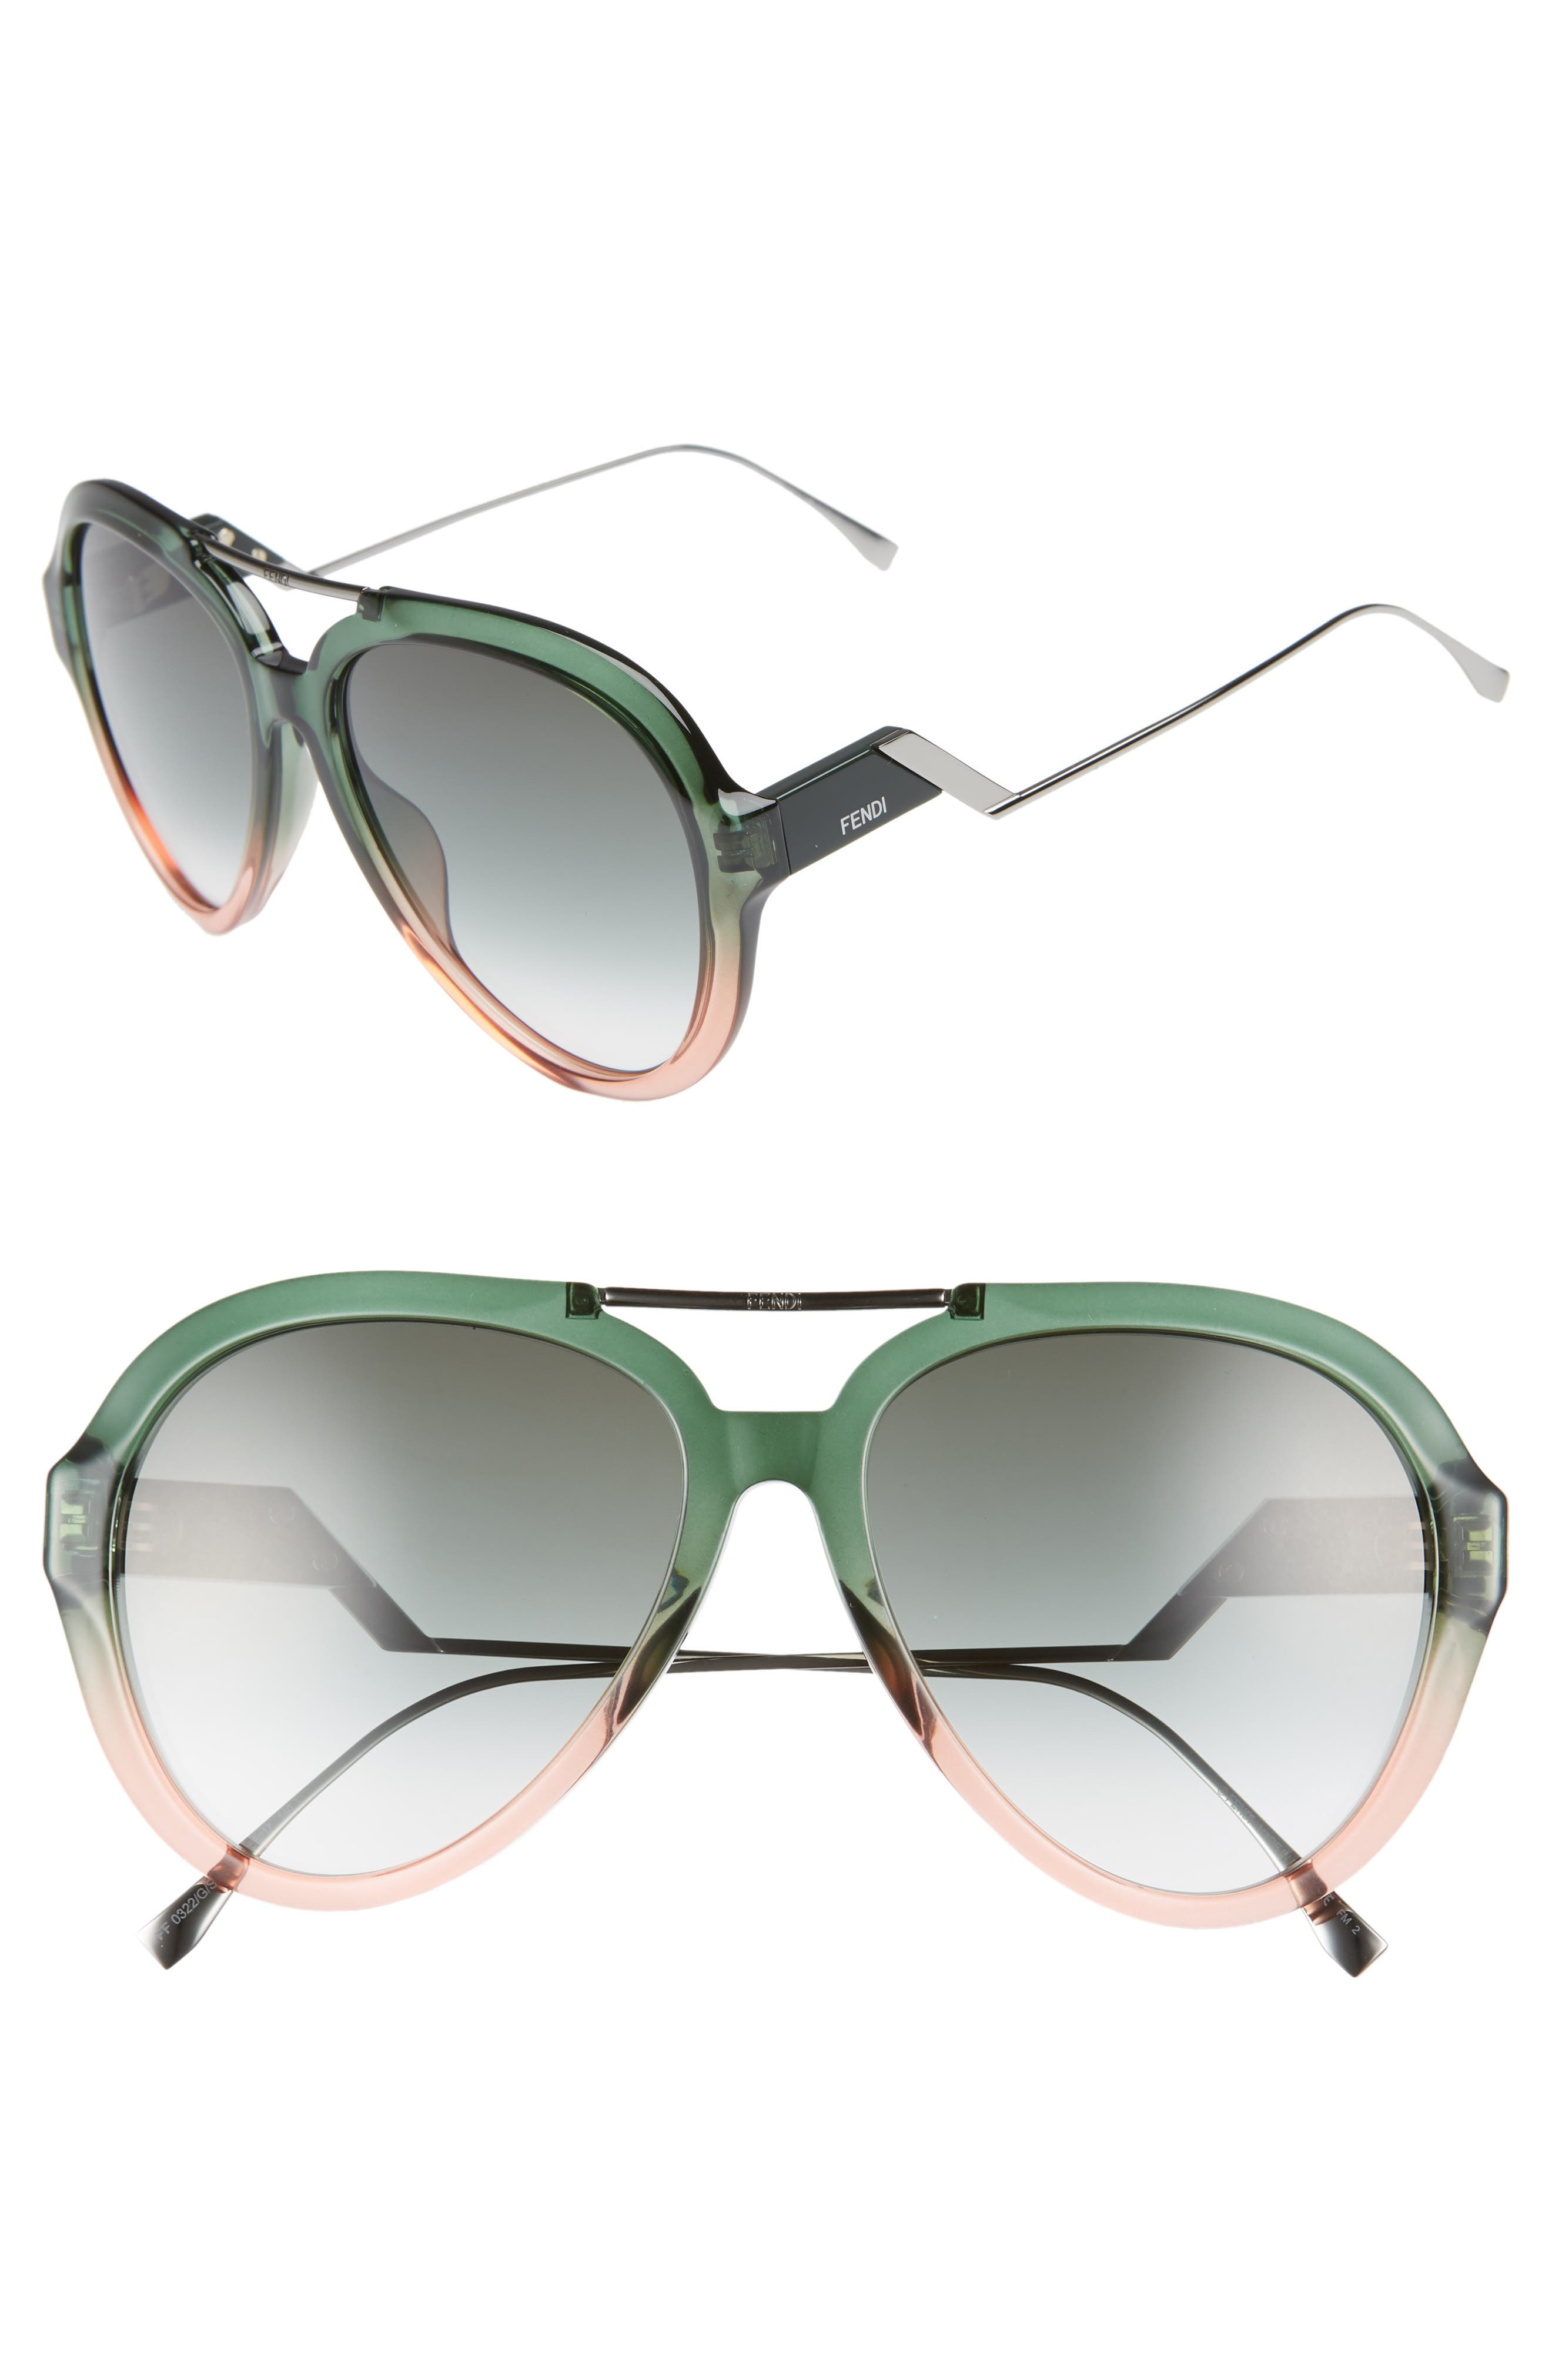 176acf79cd30 Fendi Sunglasses for Women